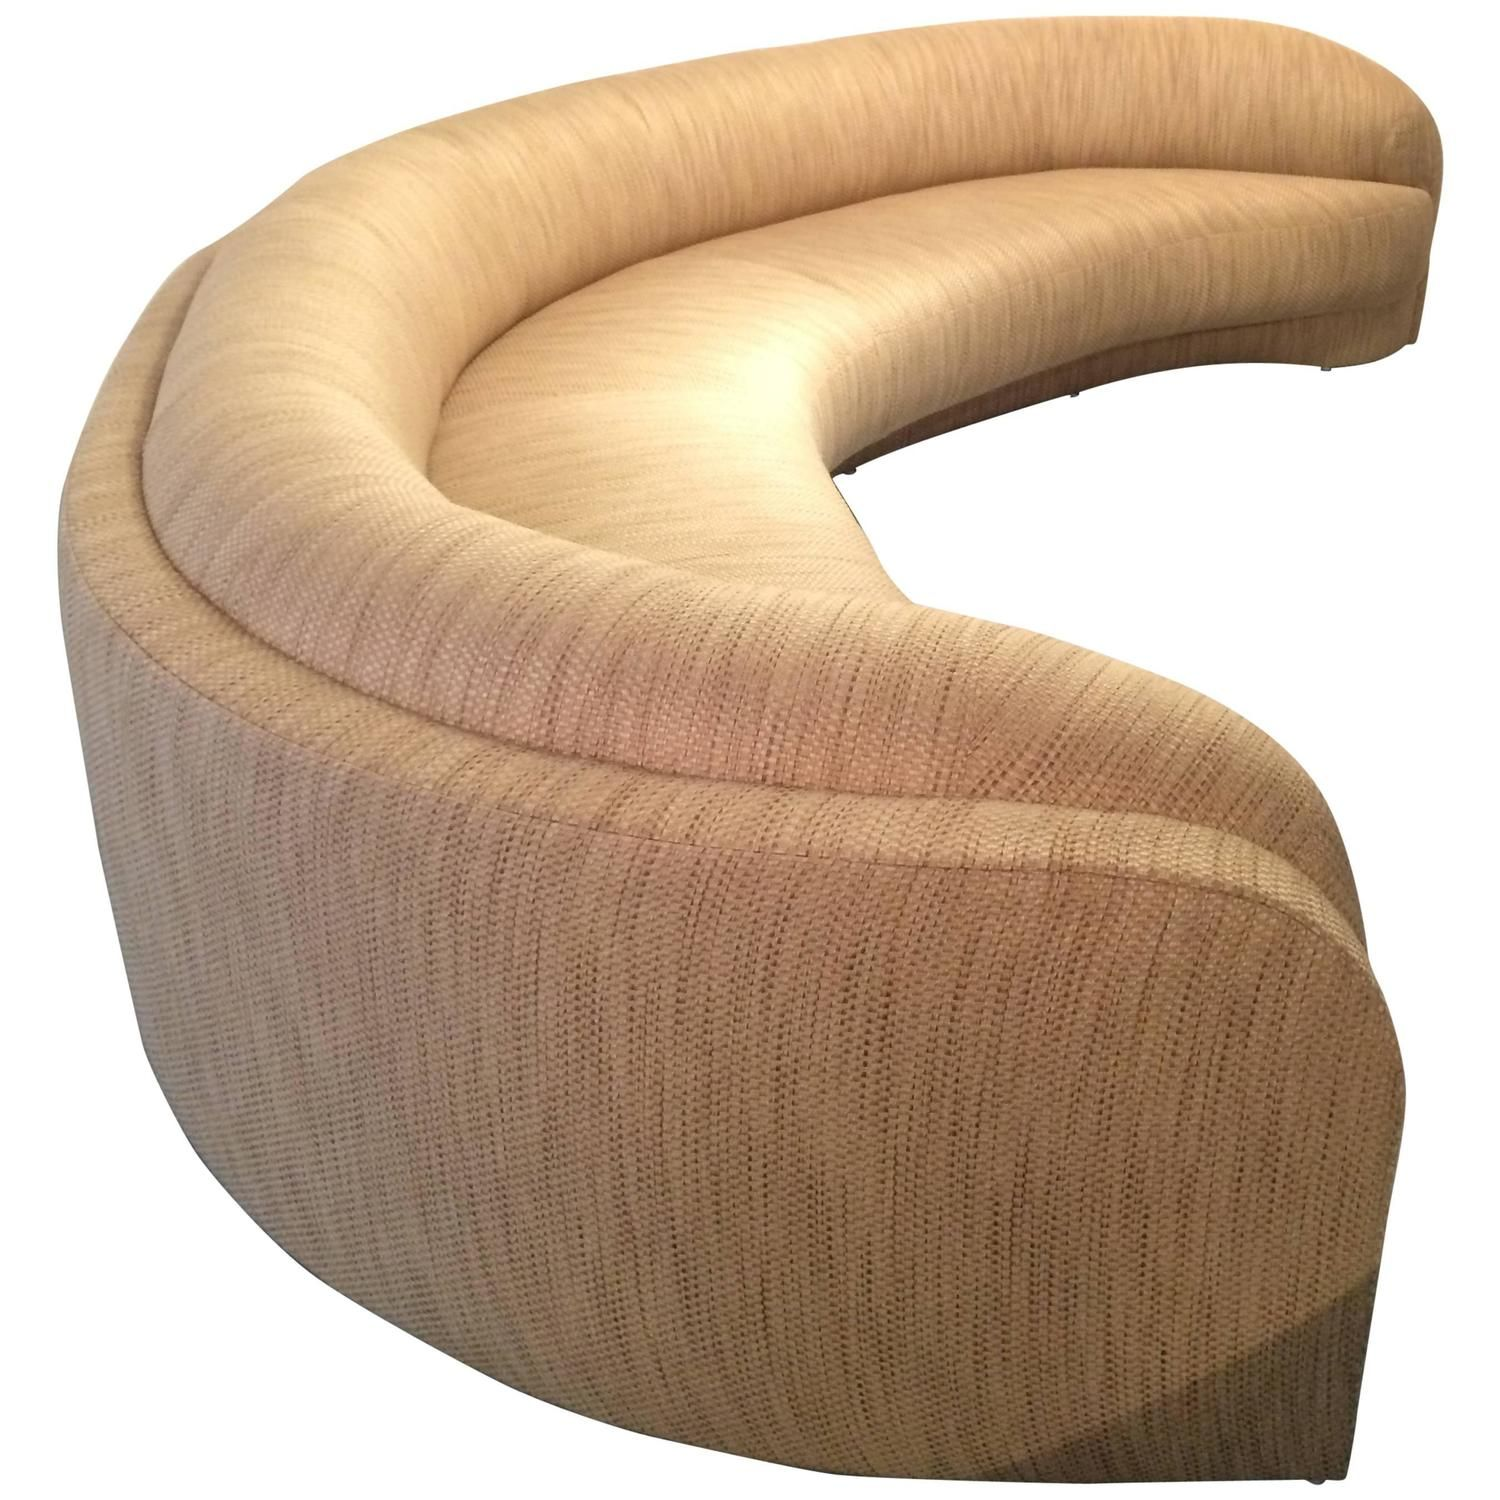 Amazing Sculpted Custom Made Sofa by Steve Chase